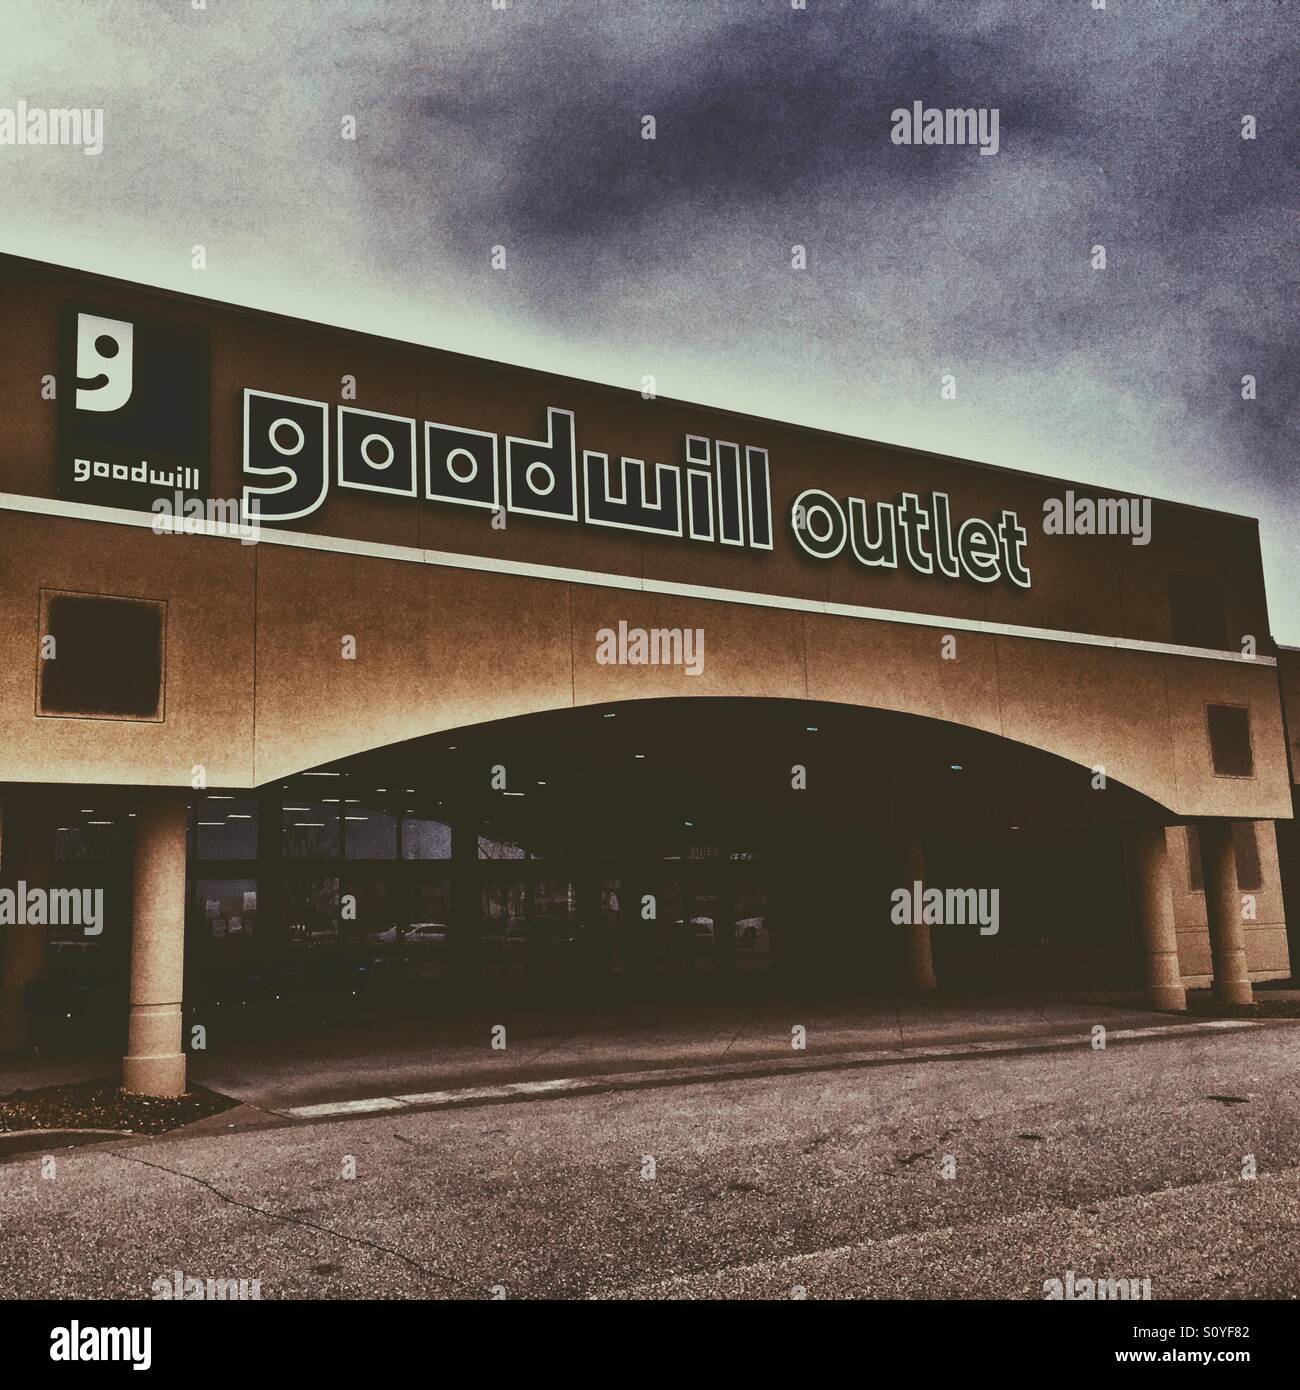 Goodwill Outlet Thrift Store - Stock Image